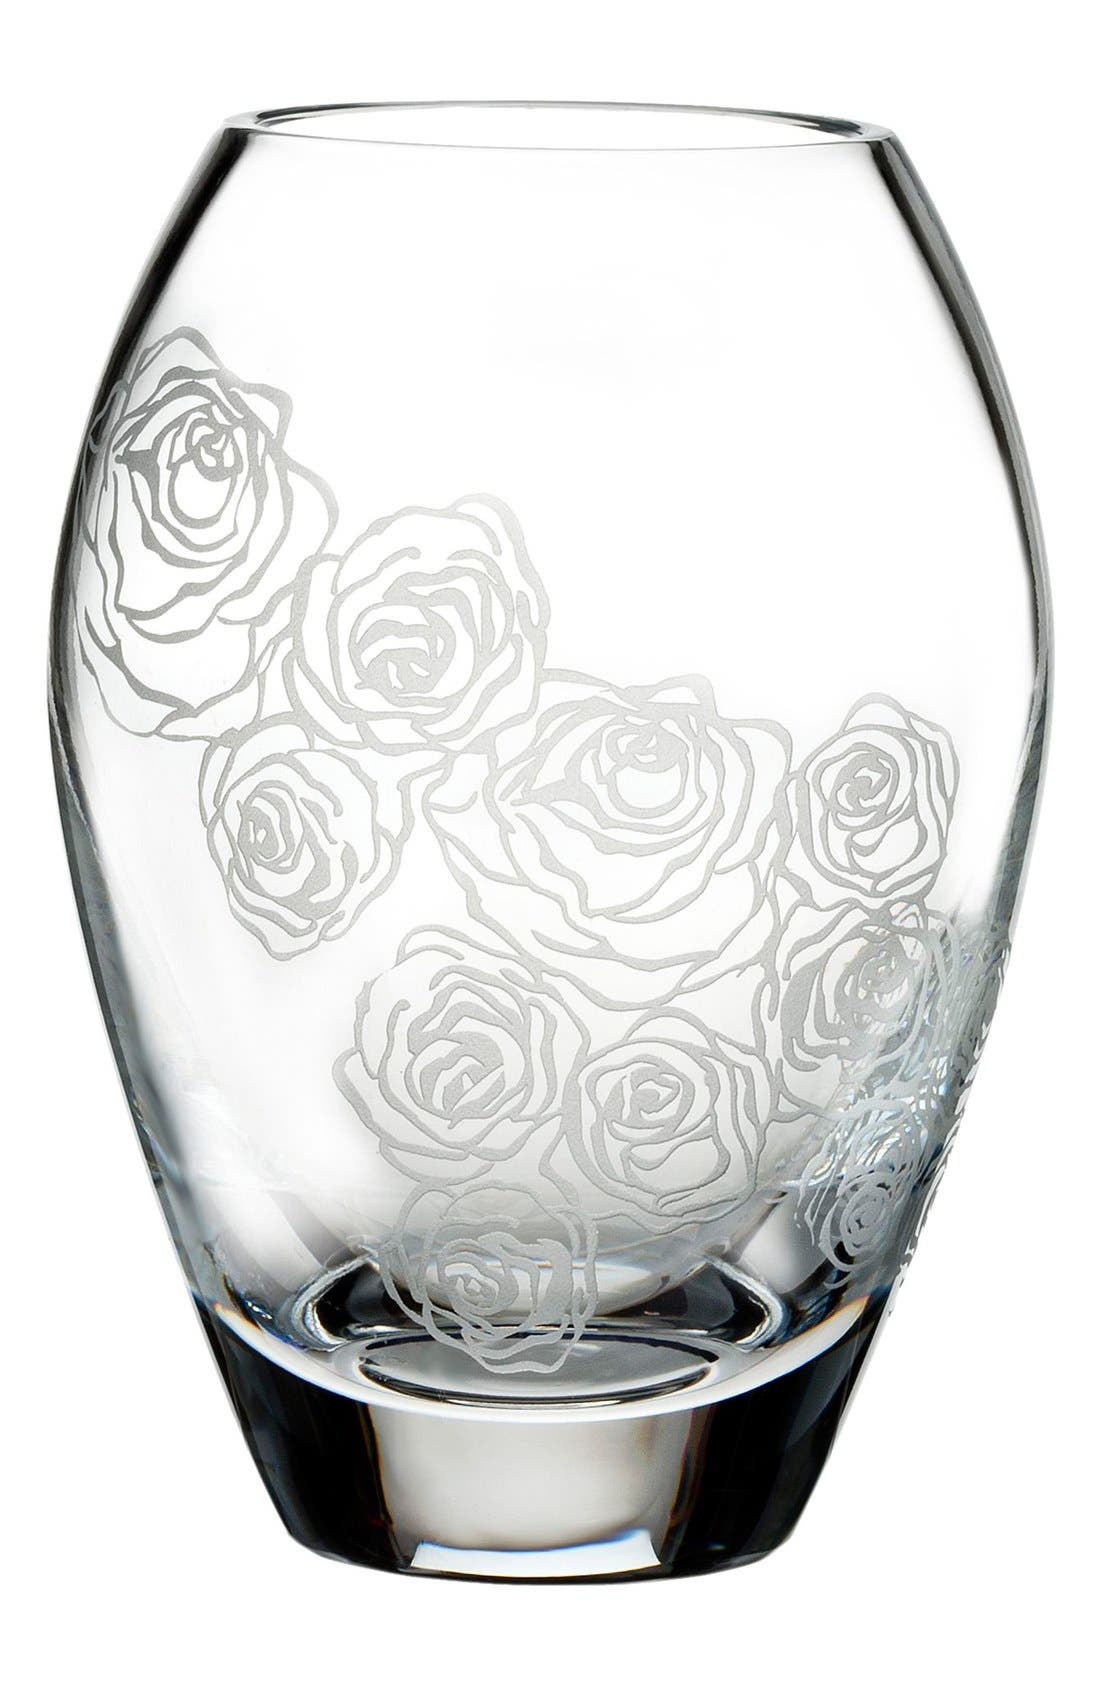 MONIQUE LHUILLIER WATERFORD 'Sunday Rose' Lead Crystal PosyVase